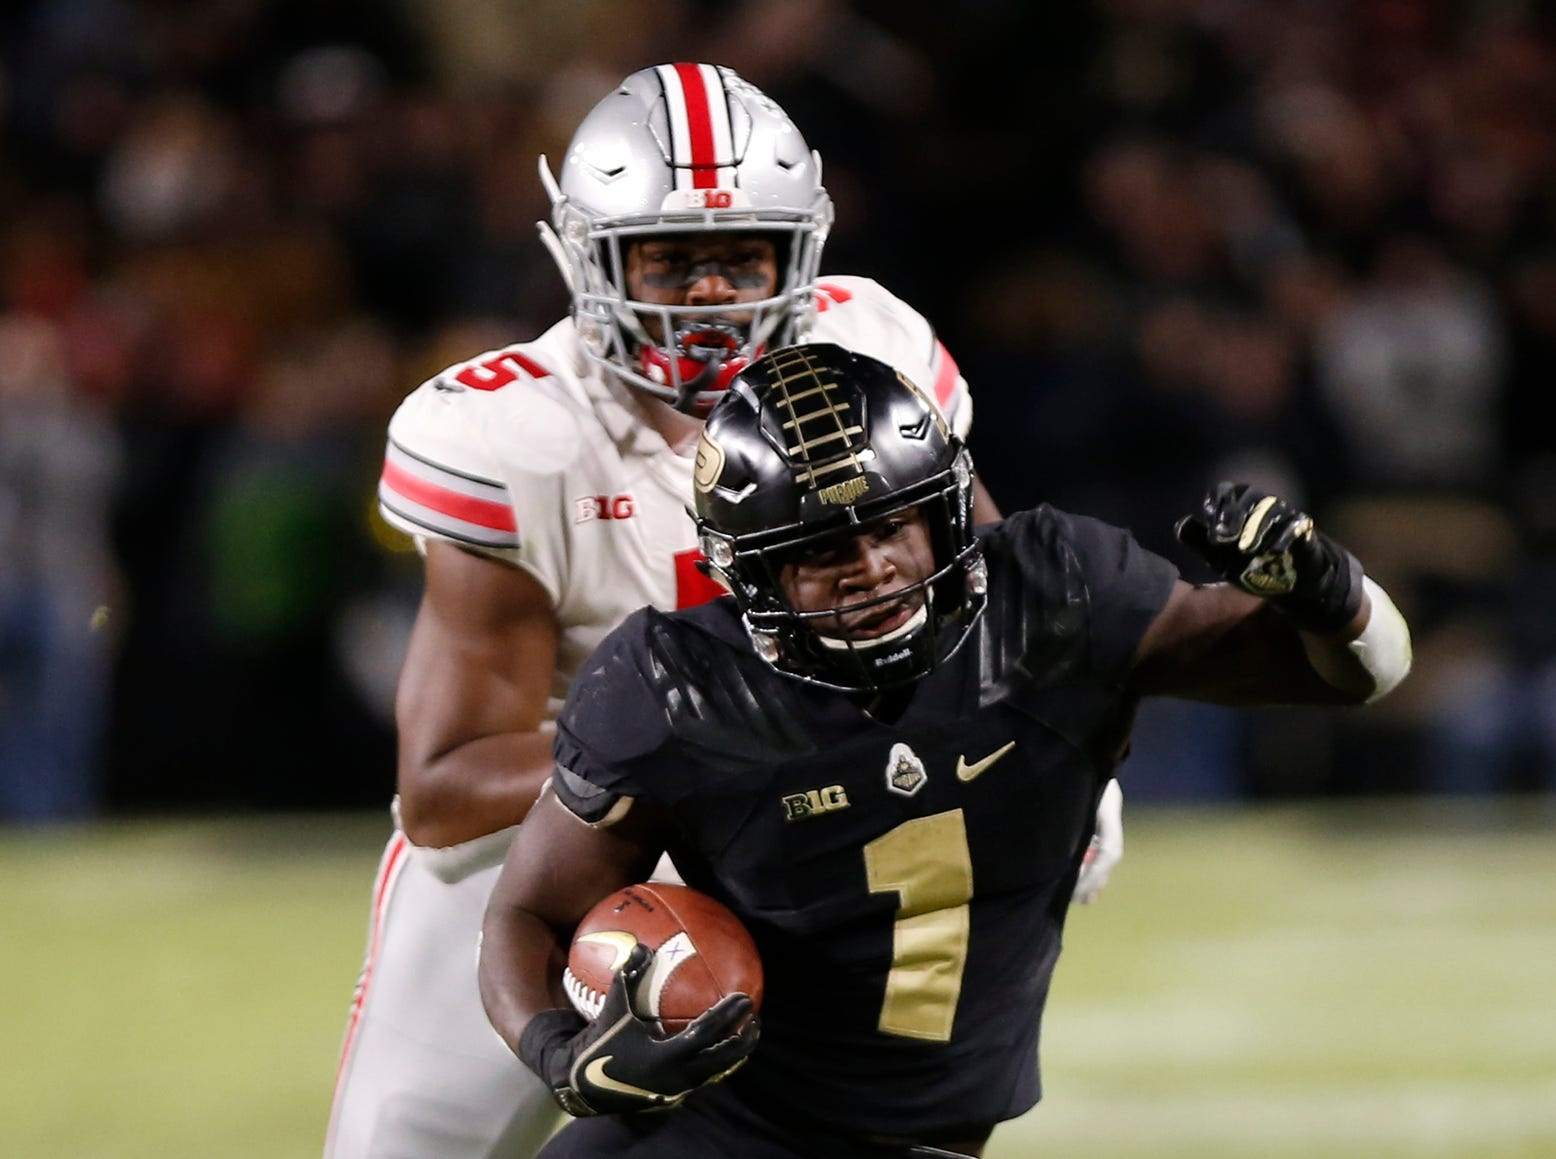 D. J. Knox with a carry against Ohio State Saturday, October 20, 2018, at Ross-Ade Stadium. Purdue upset the No. 2 ranked Buckeyes 49-20.